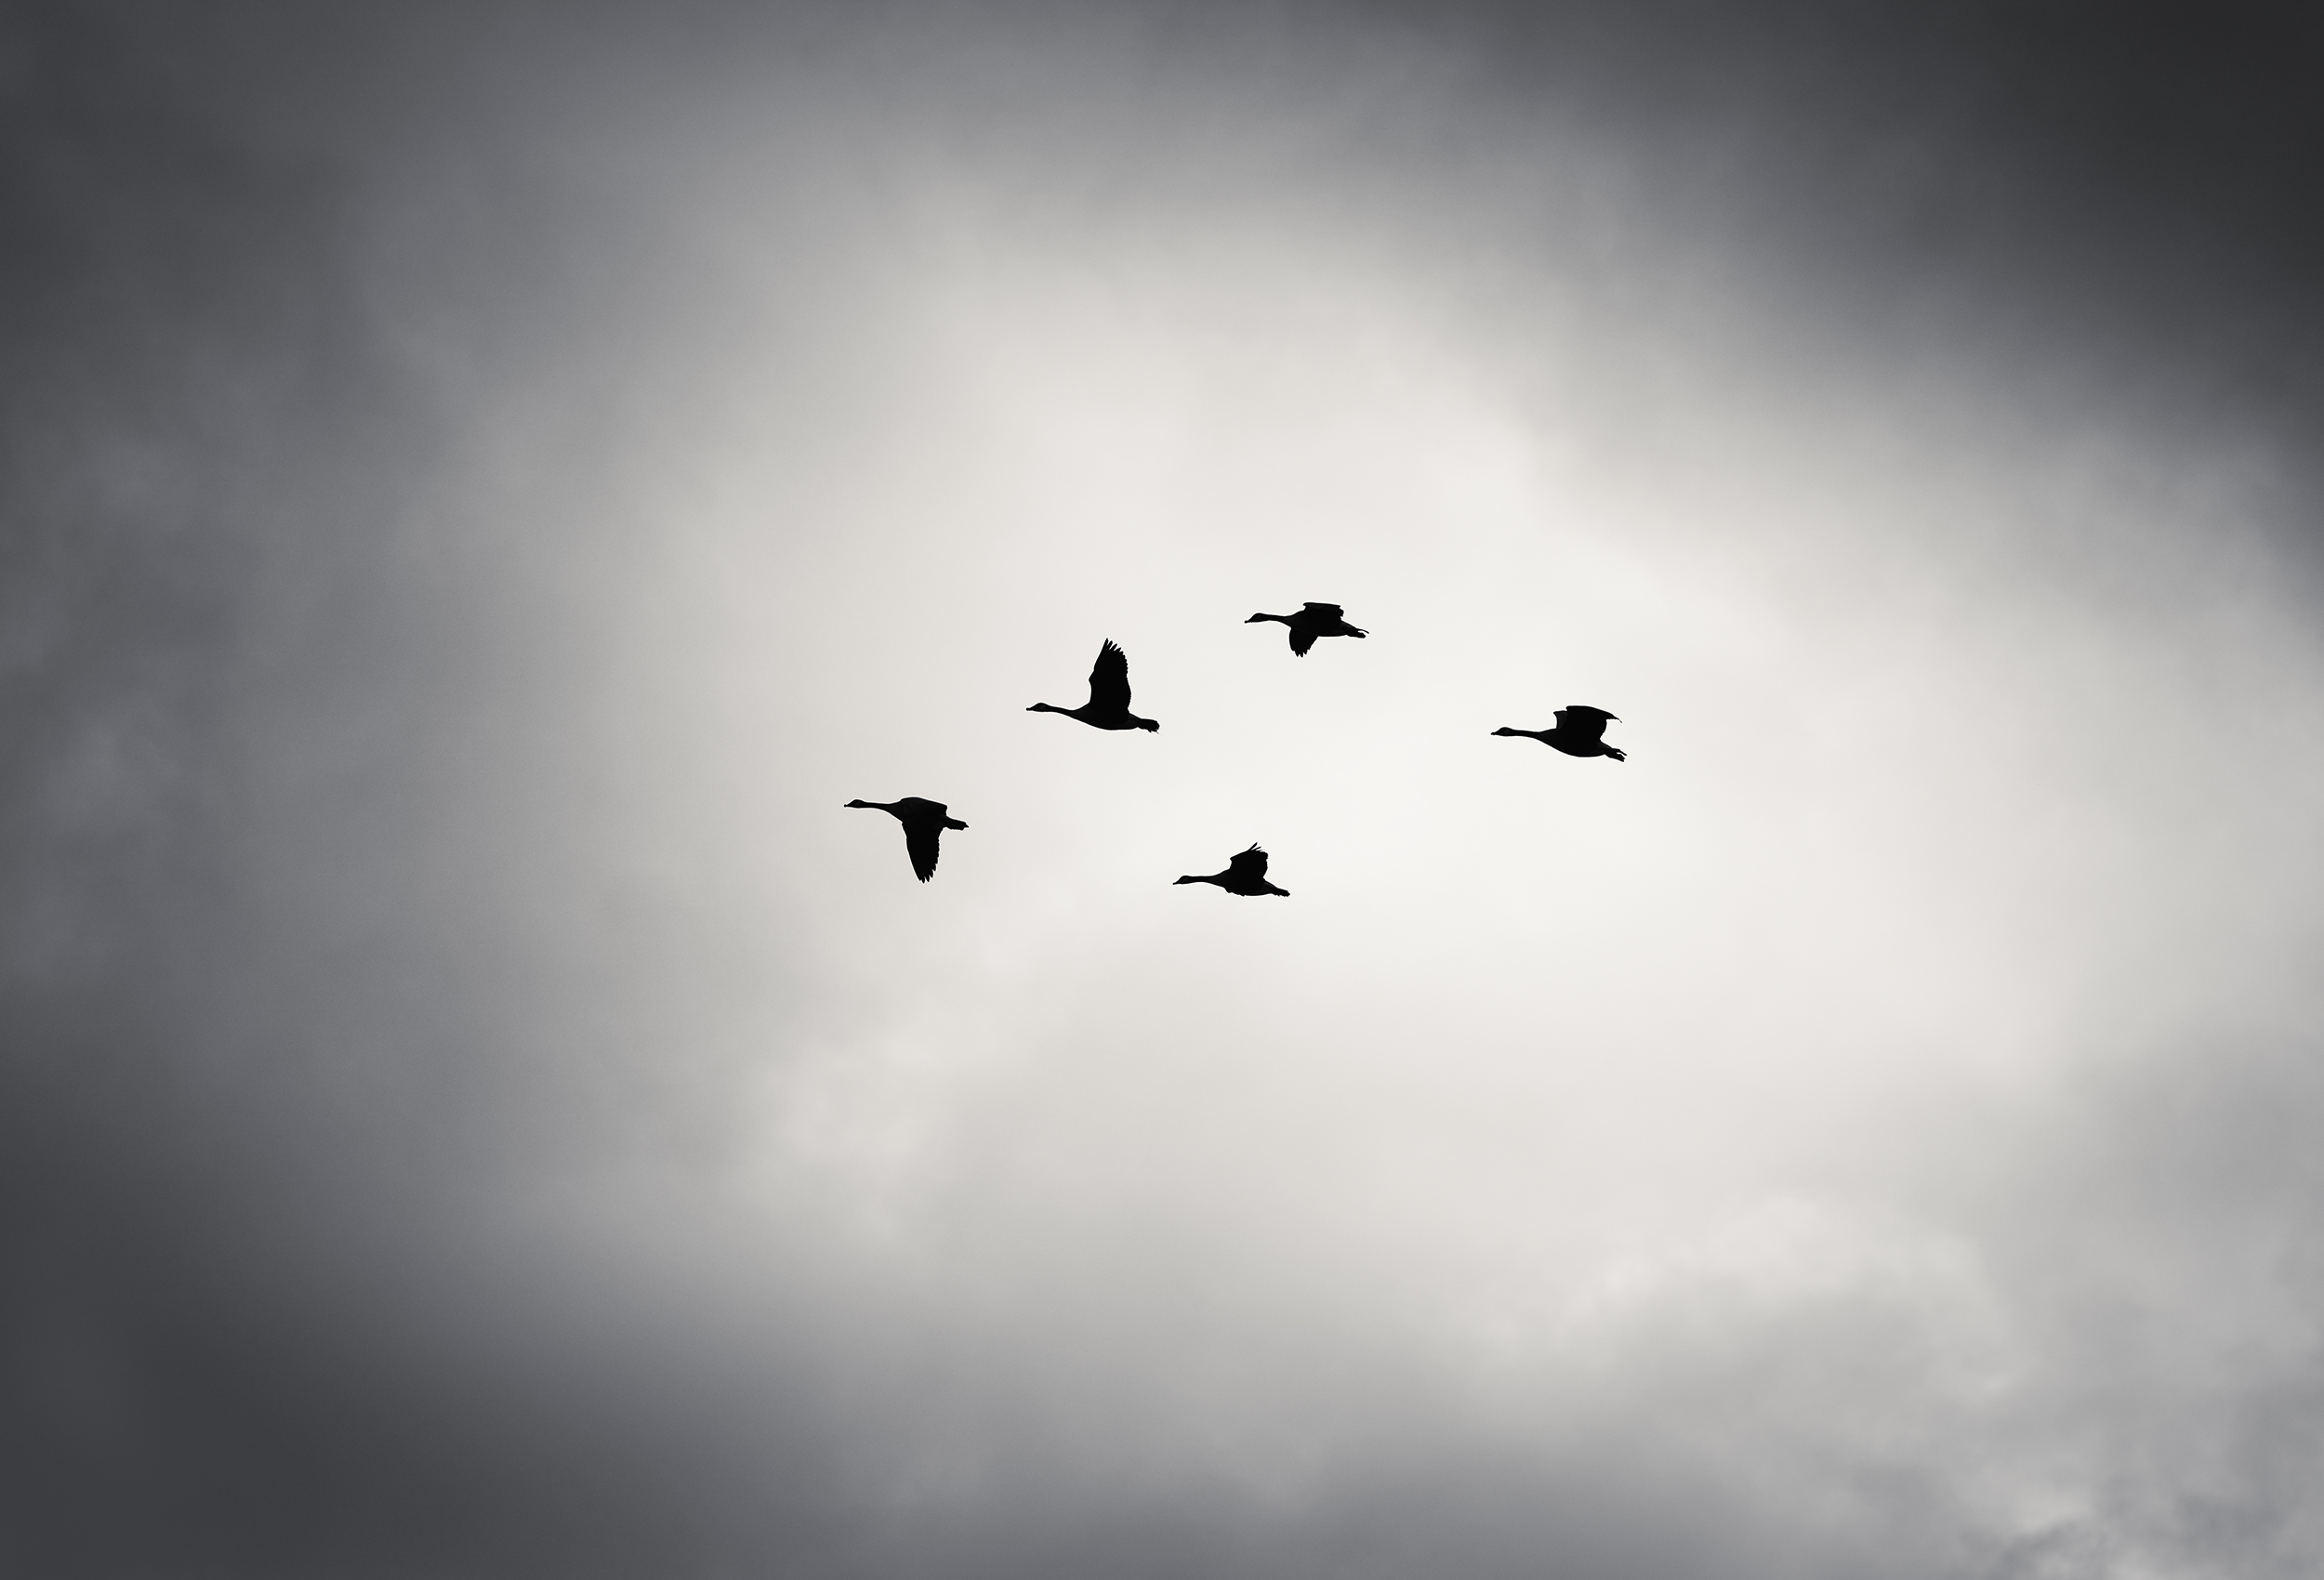 A flight of geese flying in a stormy sky in Montana